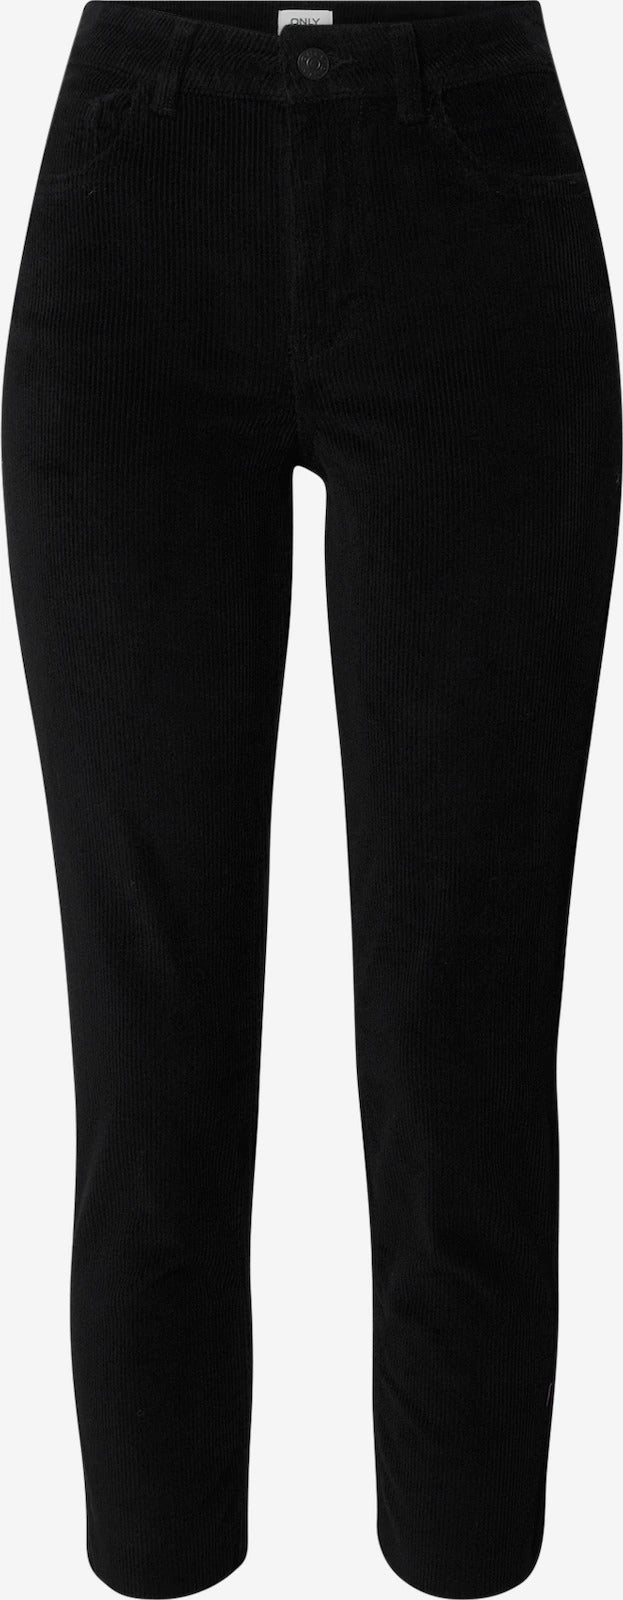 Only Donna Pantalone Velluto Velour Emily Black